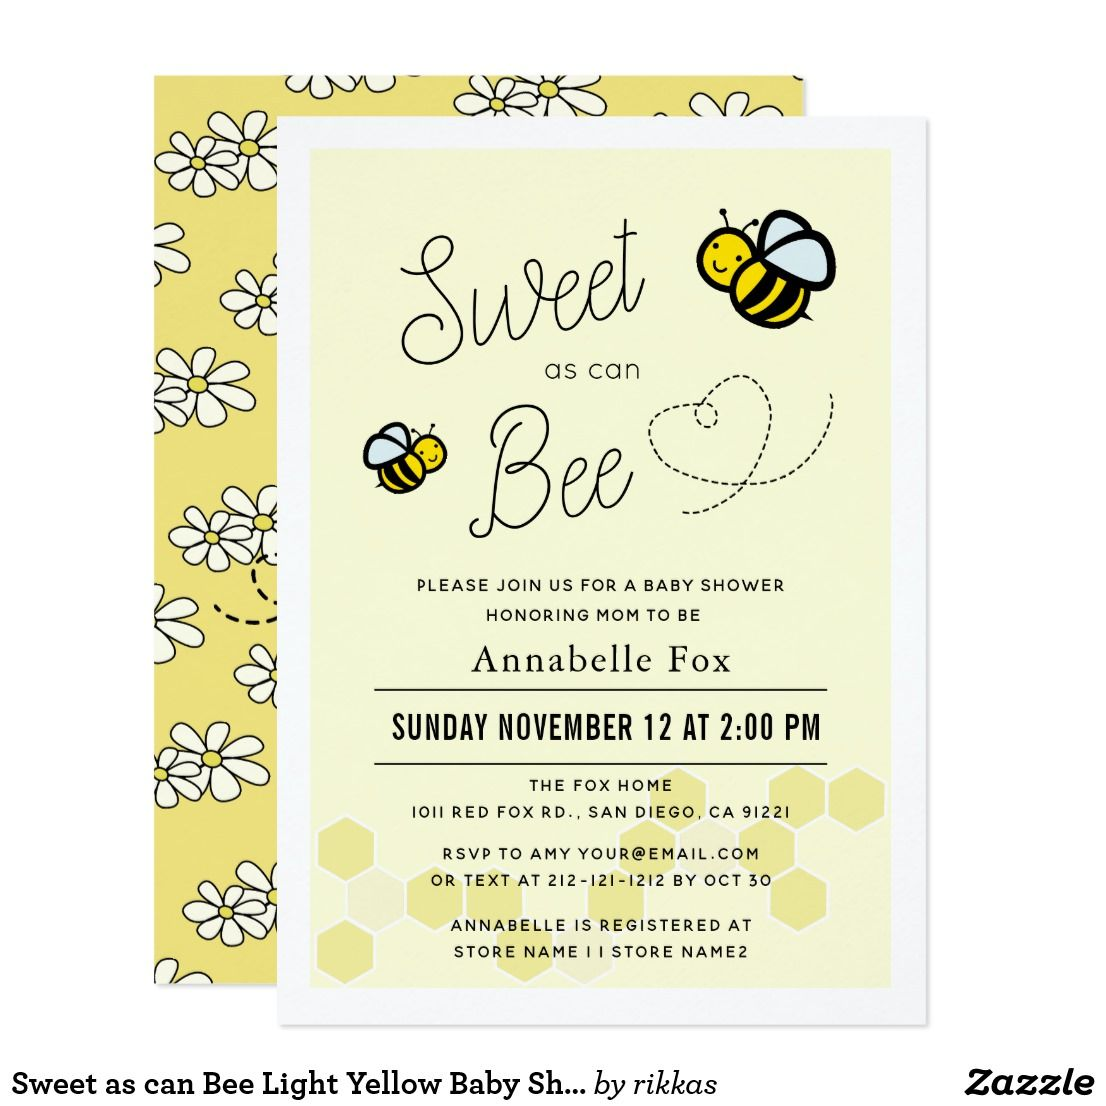 sweet as can bee light yellow baby shower invitation zazzle com in rh pinterest com